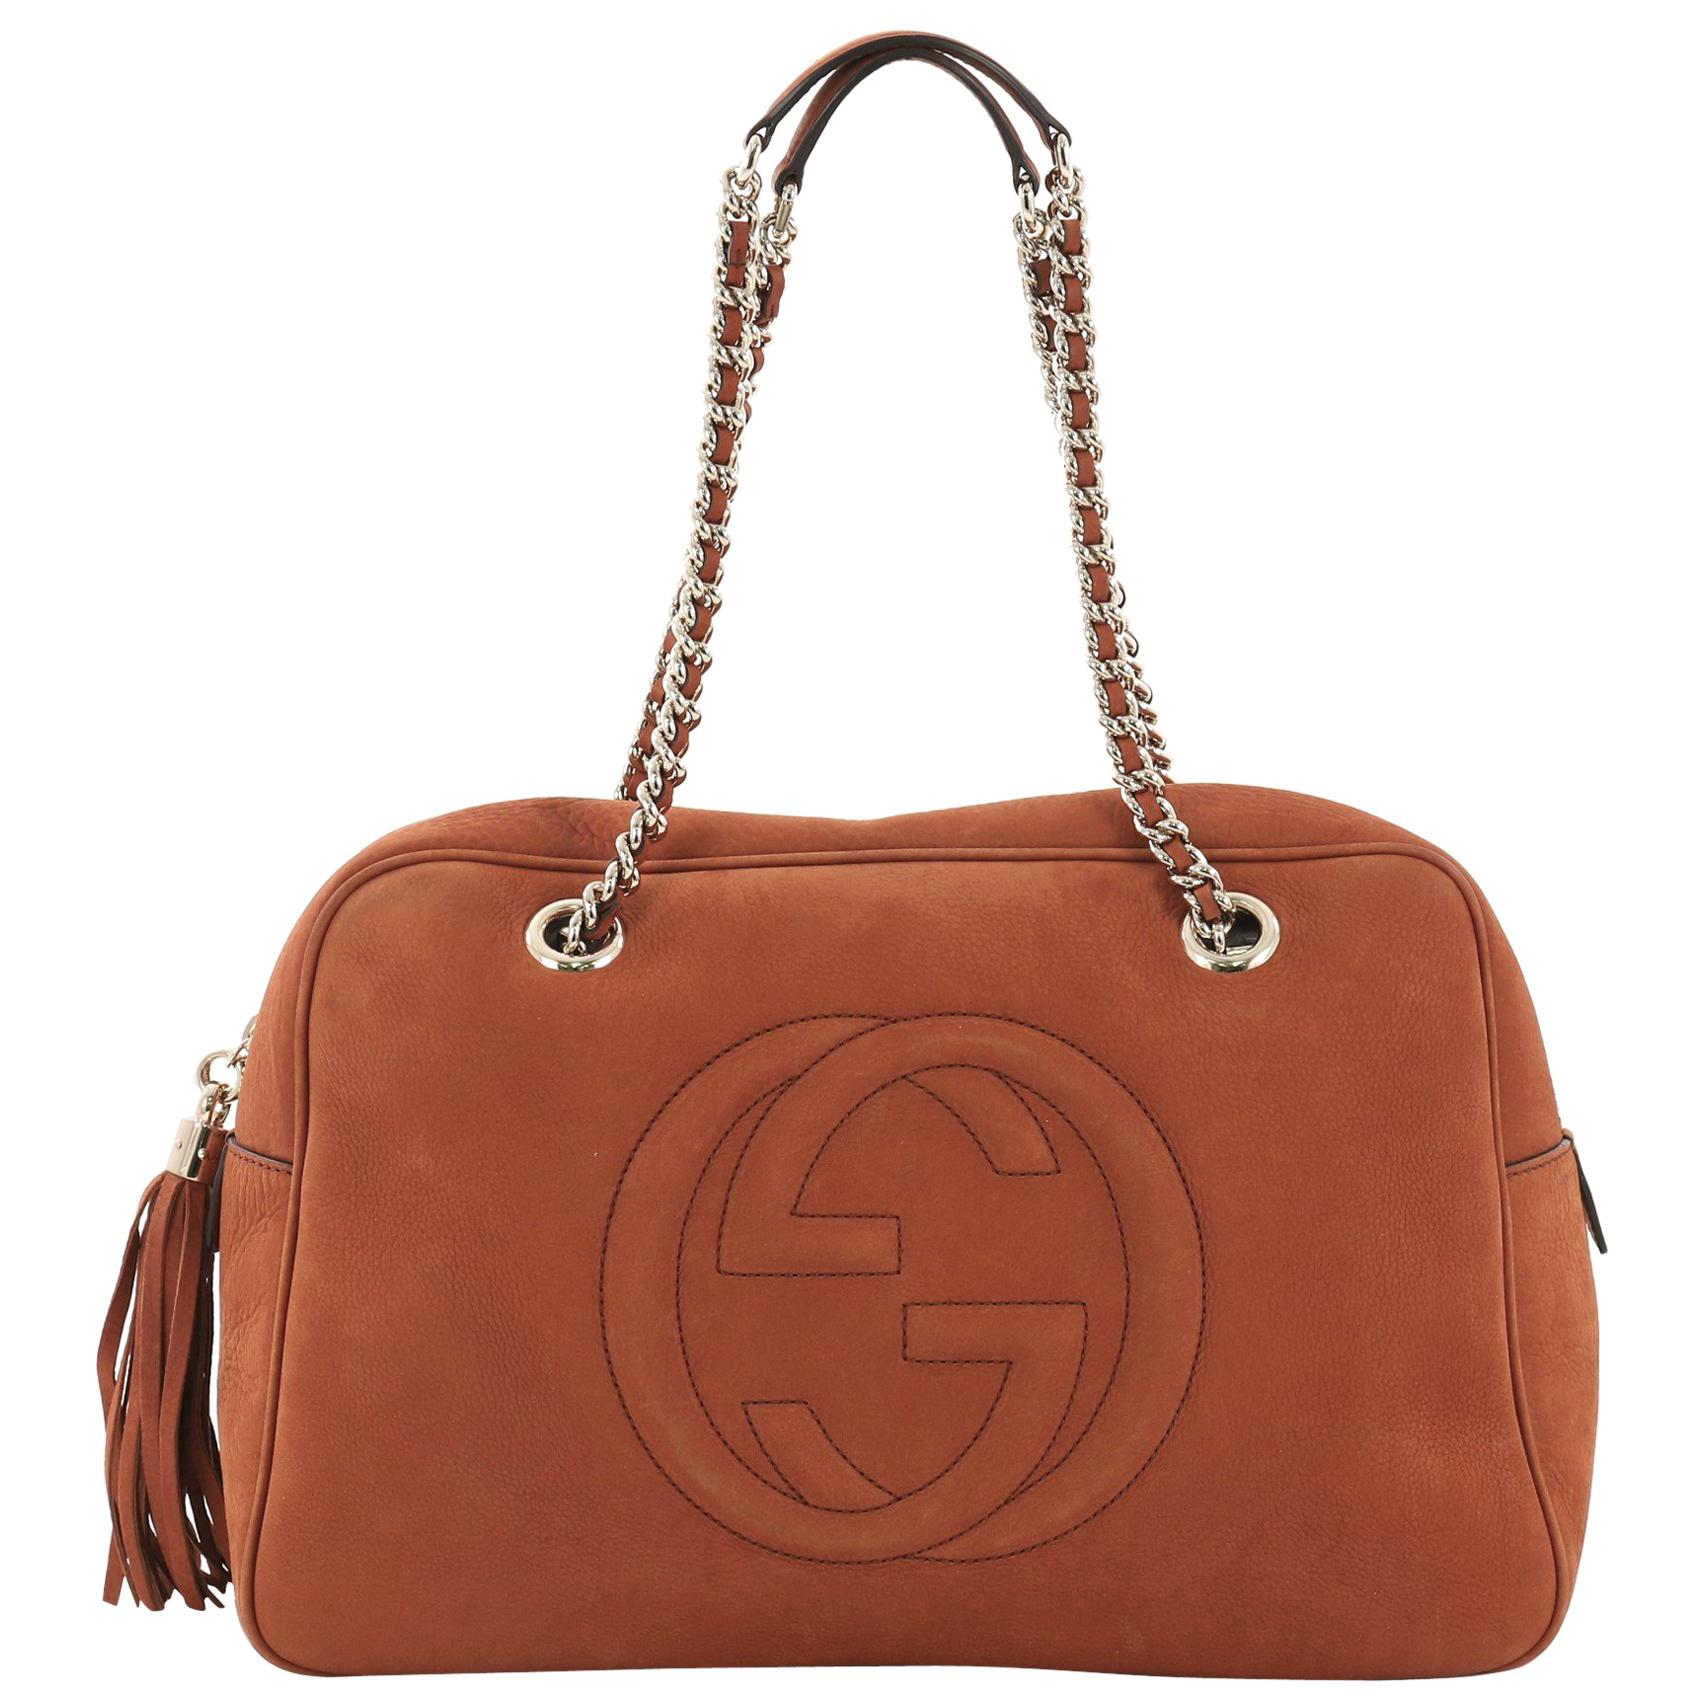 65c8cd6ae350 Vintage Gucci Shoulder Bags - 942 For Sale at 1stdibs - Page 2